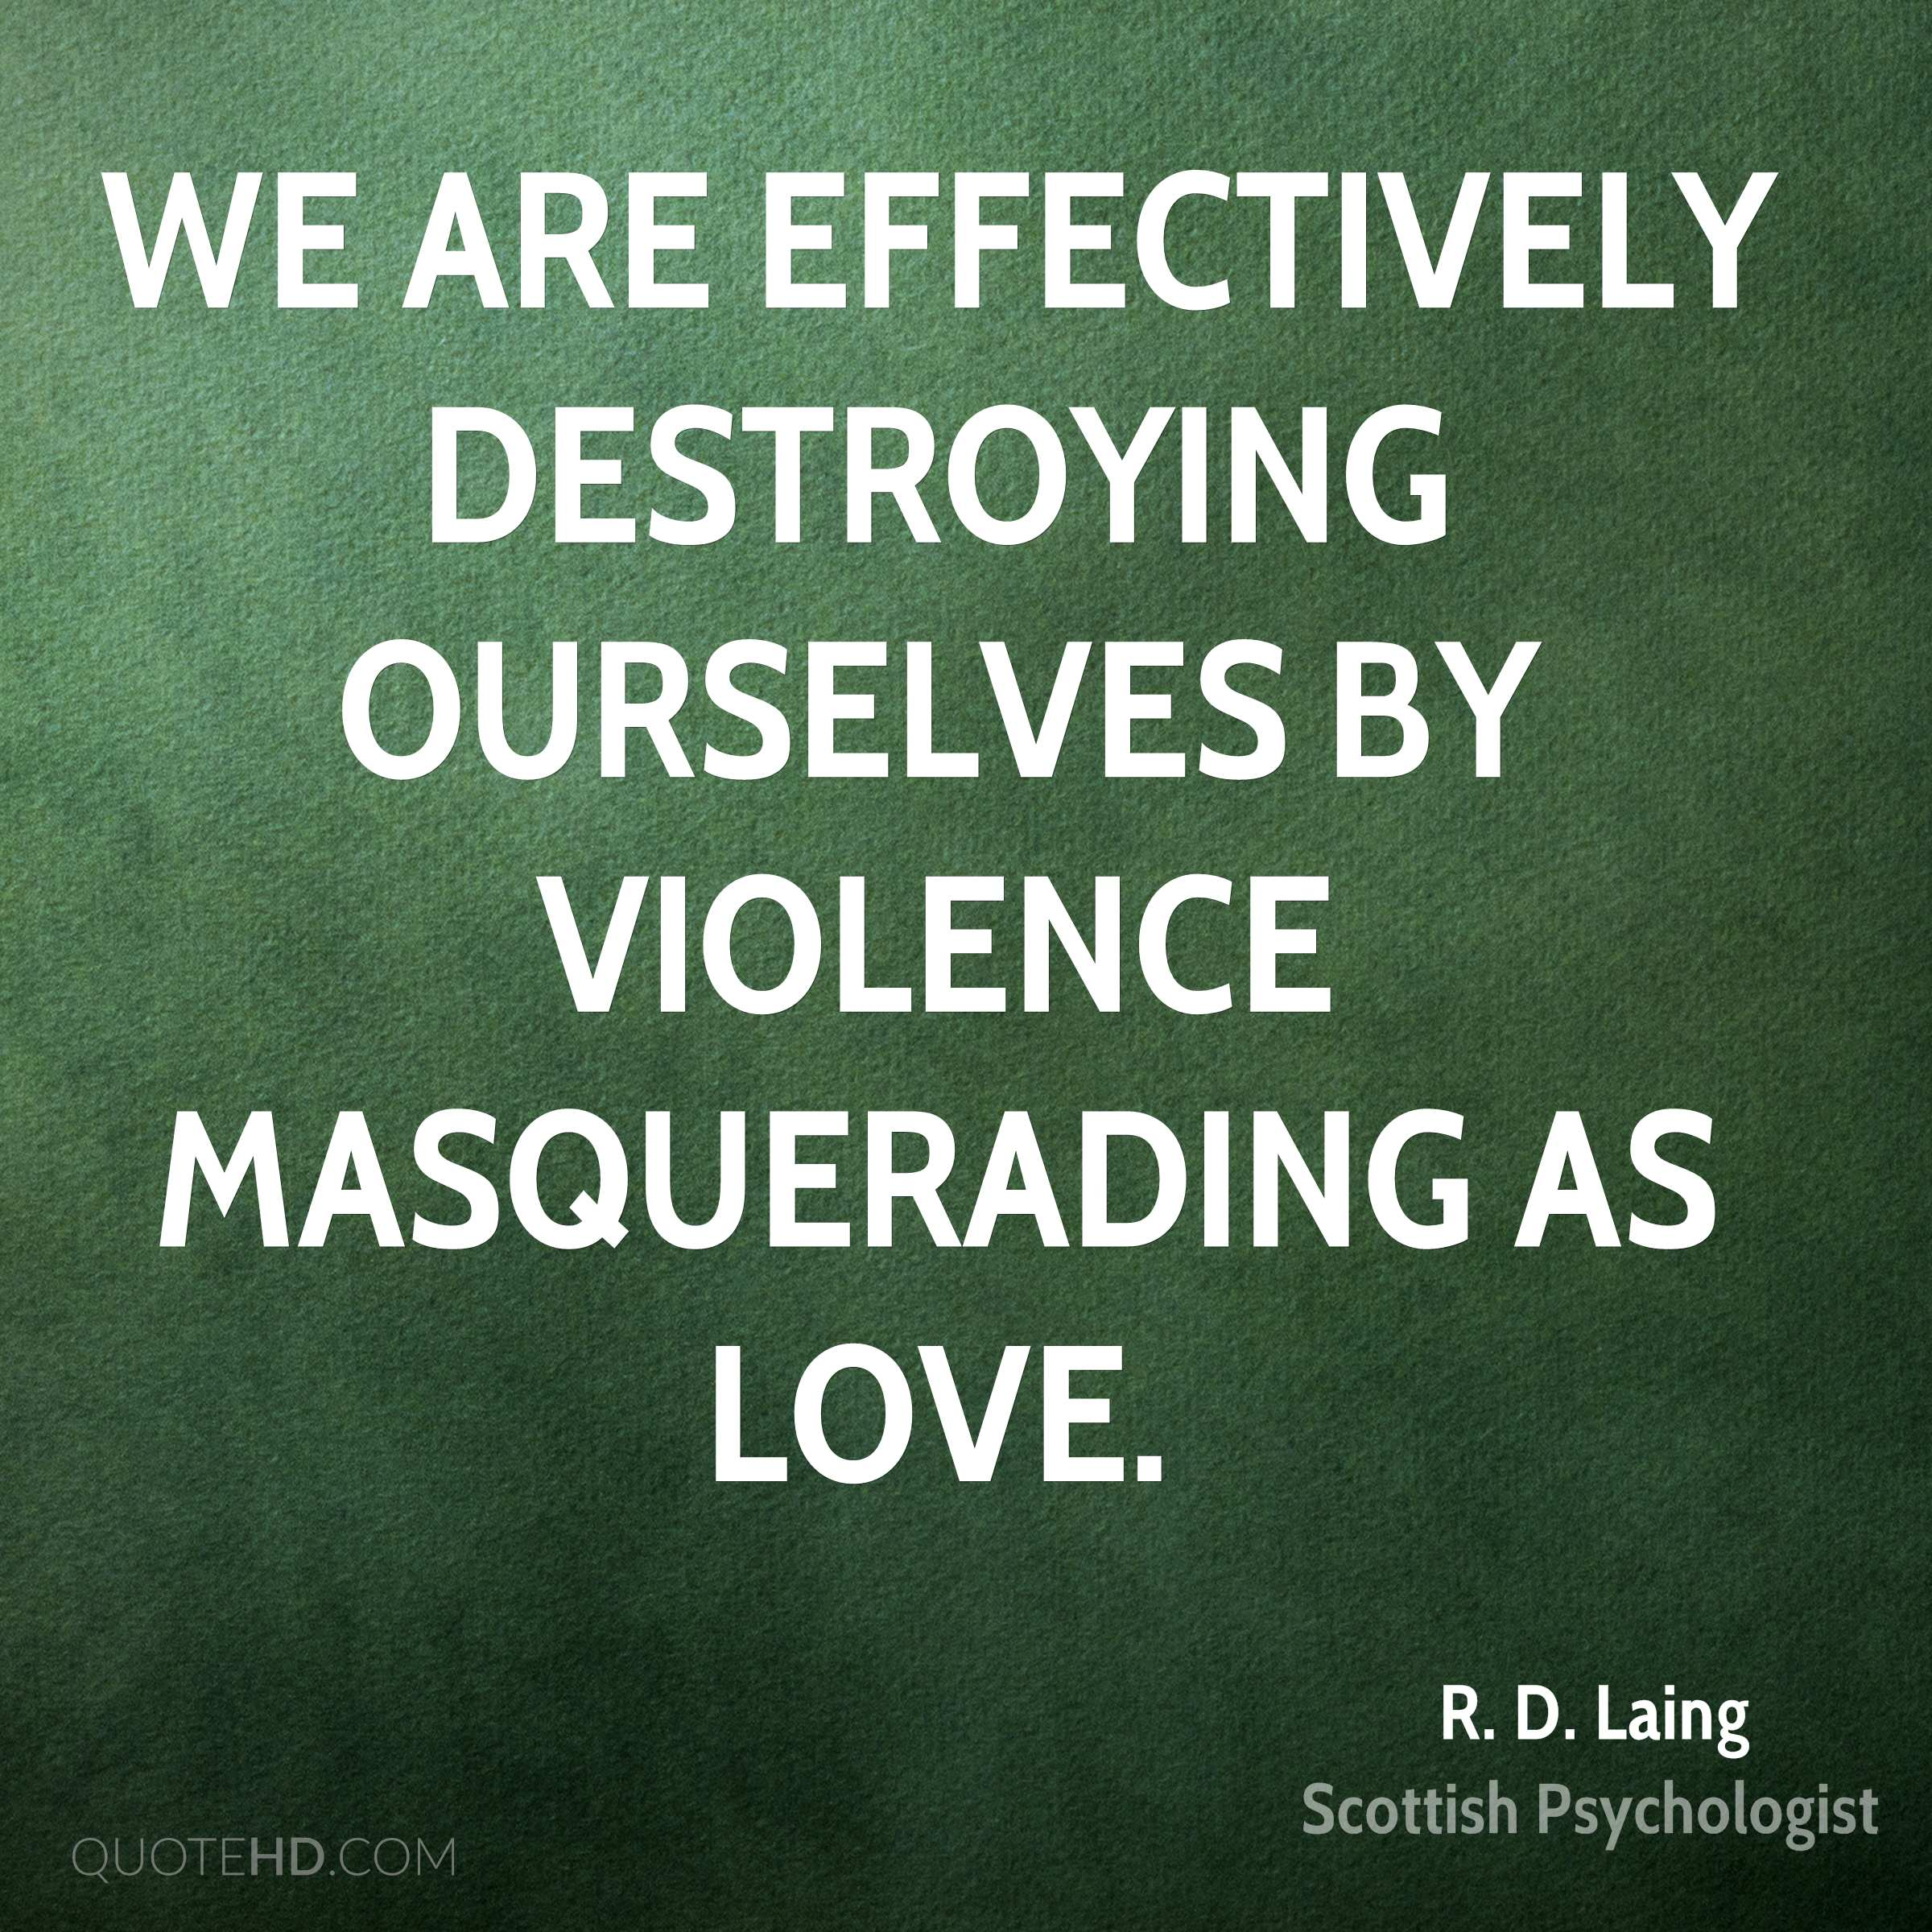 We are effectively destroying ourselves by violence masquerading as love.